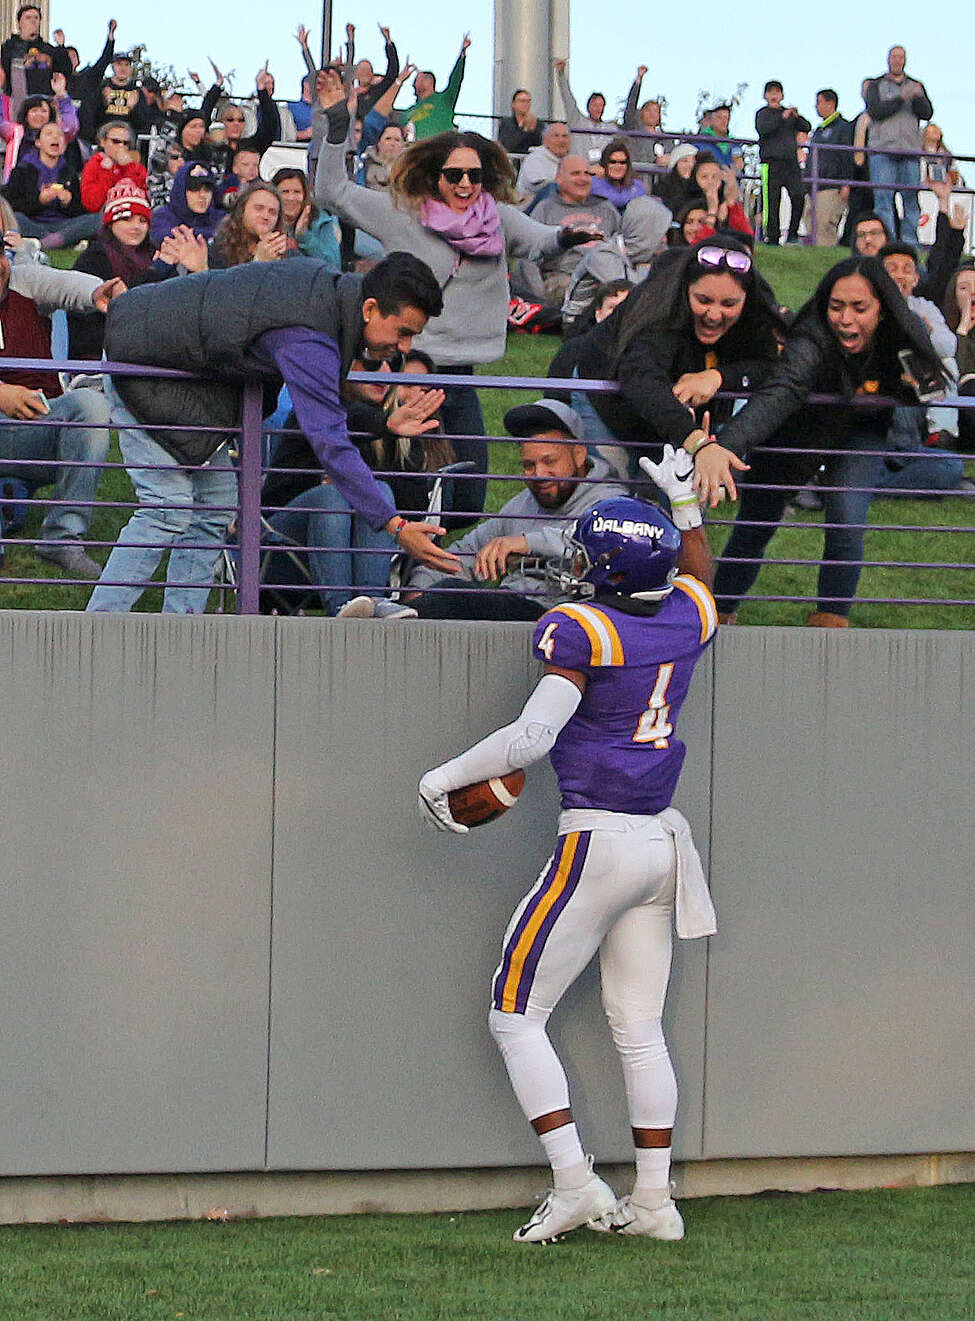 UAlbany receiver Juwan Green celebrates with fans after his first-quarter touchdown in the Danes game against Towson on Saturday, Oct. 20, 2018. (Thomas Palmer / Times Union)